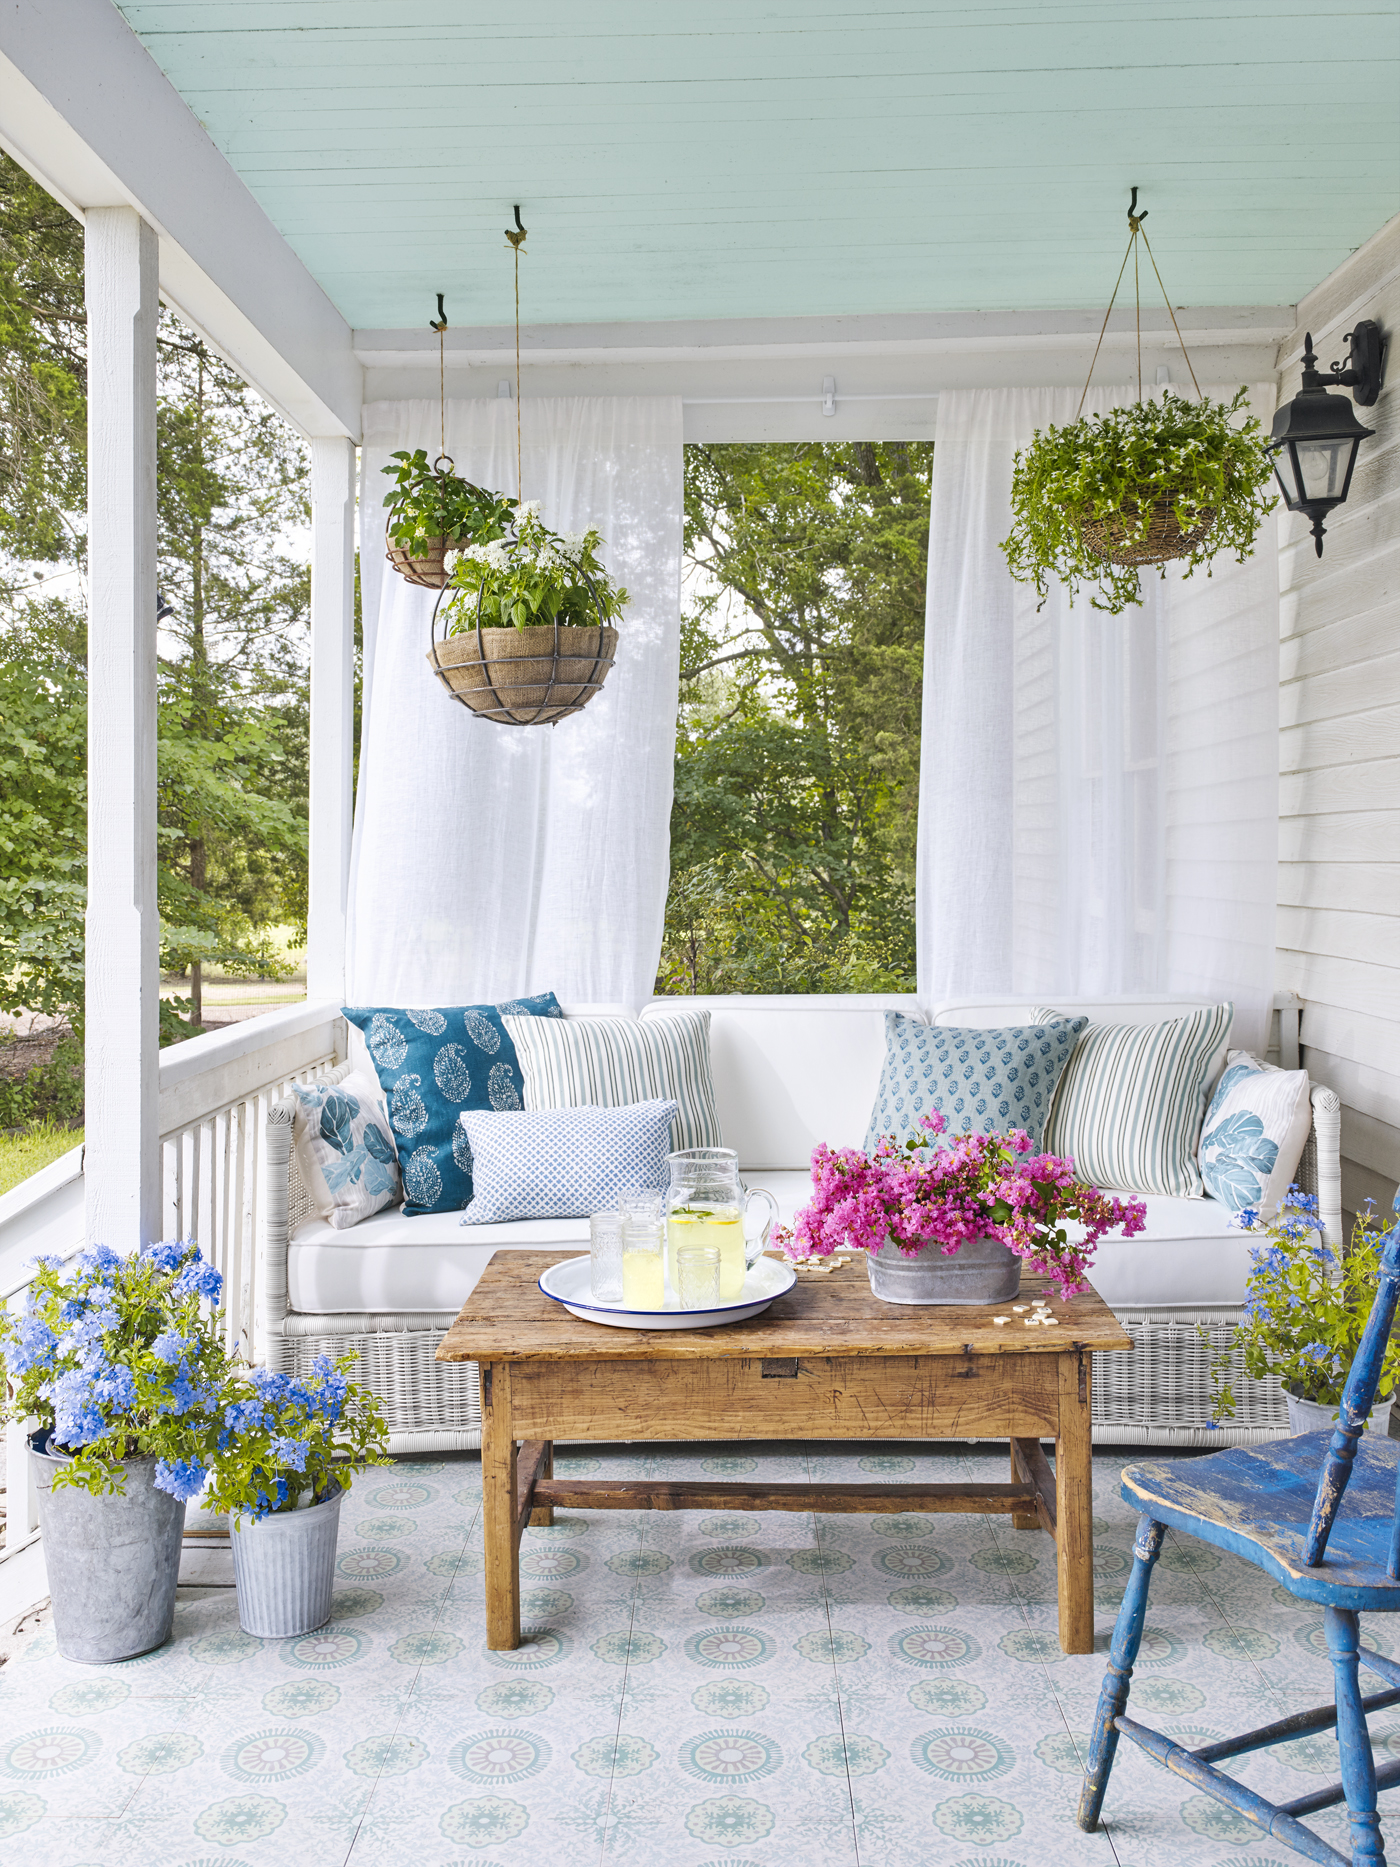 Roof Design Ideas: The Art Of Porching